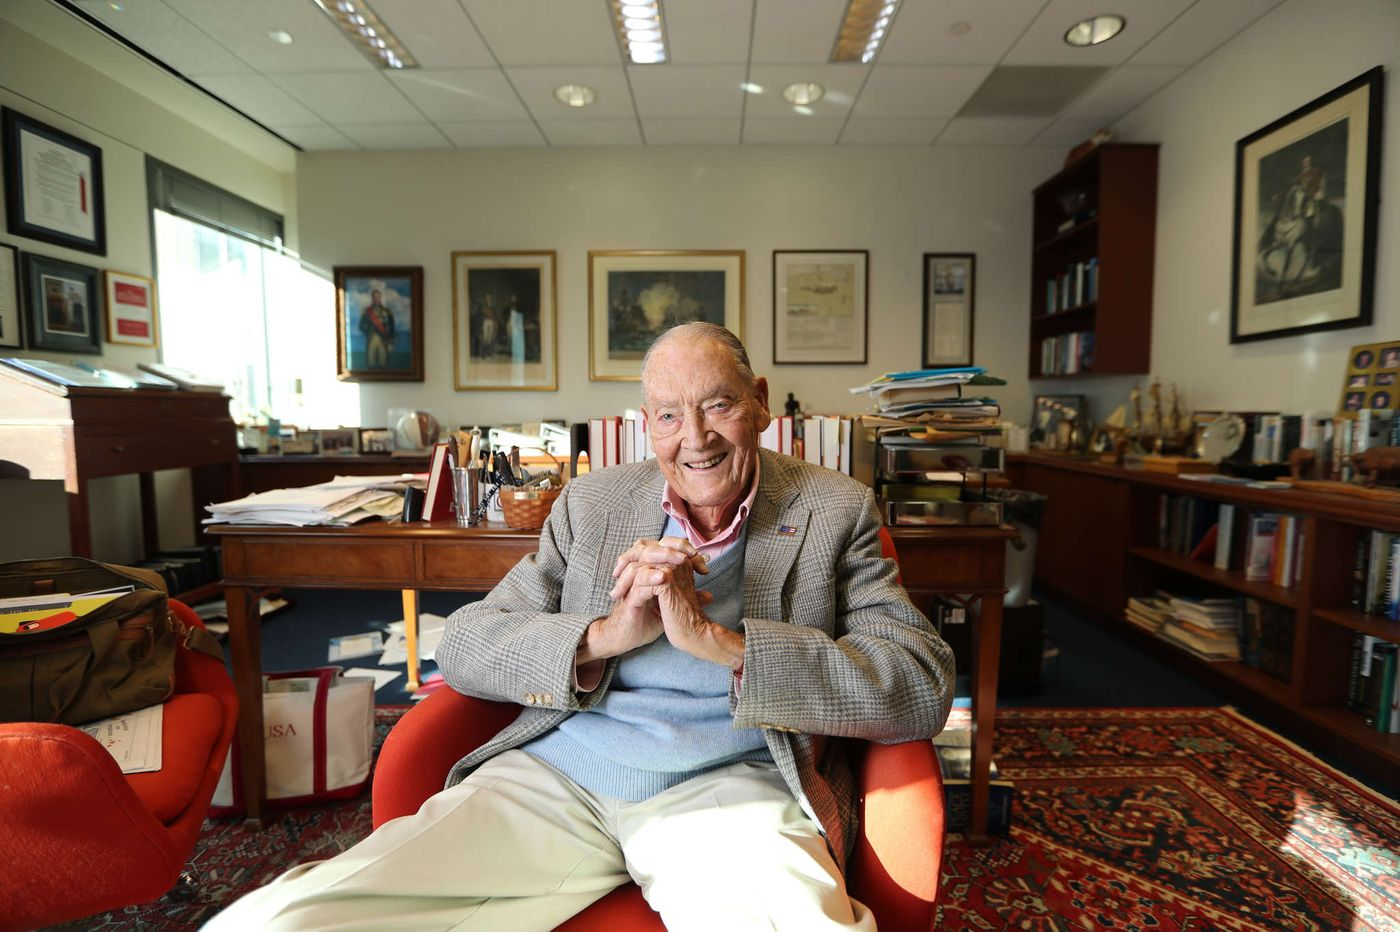 John C. Bogle, Founder of Vanguard and Fierce Advocate for Investors' Rights, Dies at 89